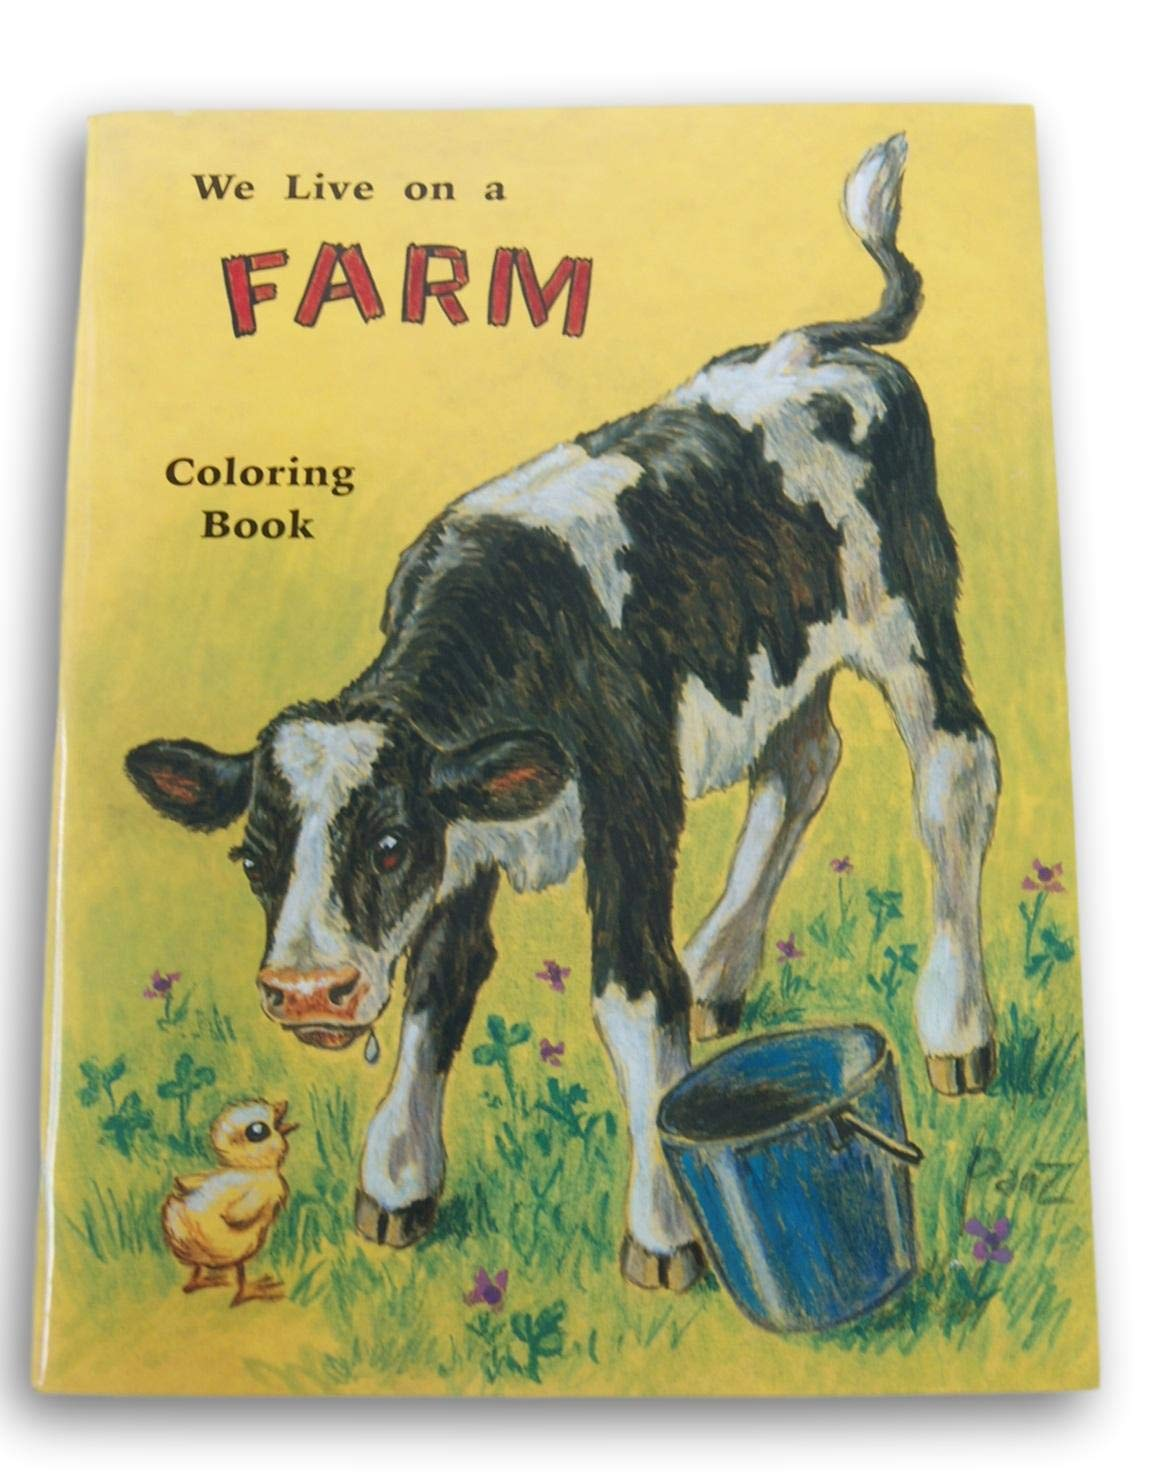 62 Pages Milestone Books Rod and Staff We Live on a Farm Coloring Book